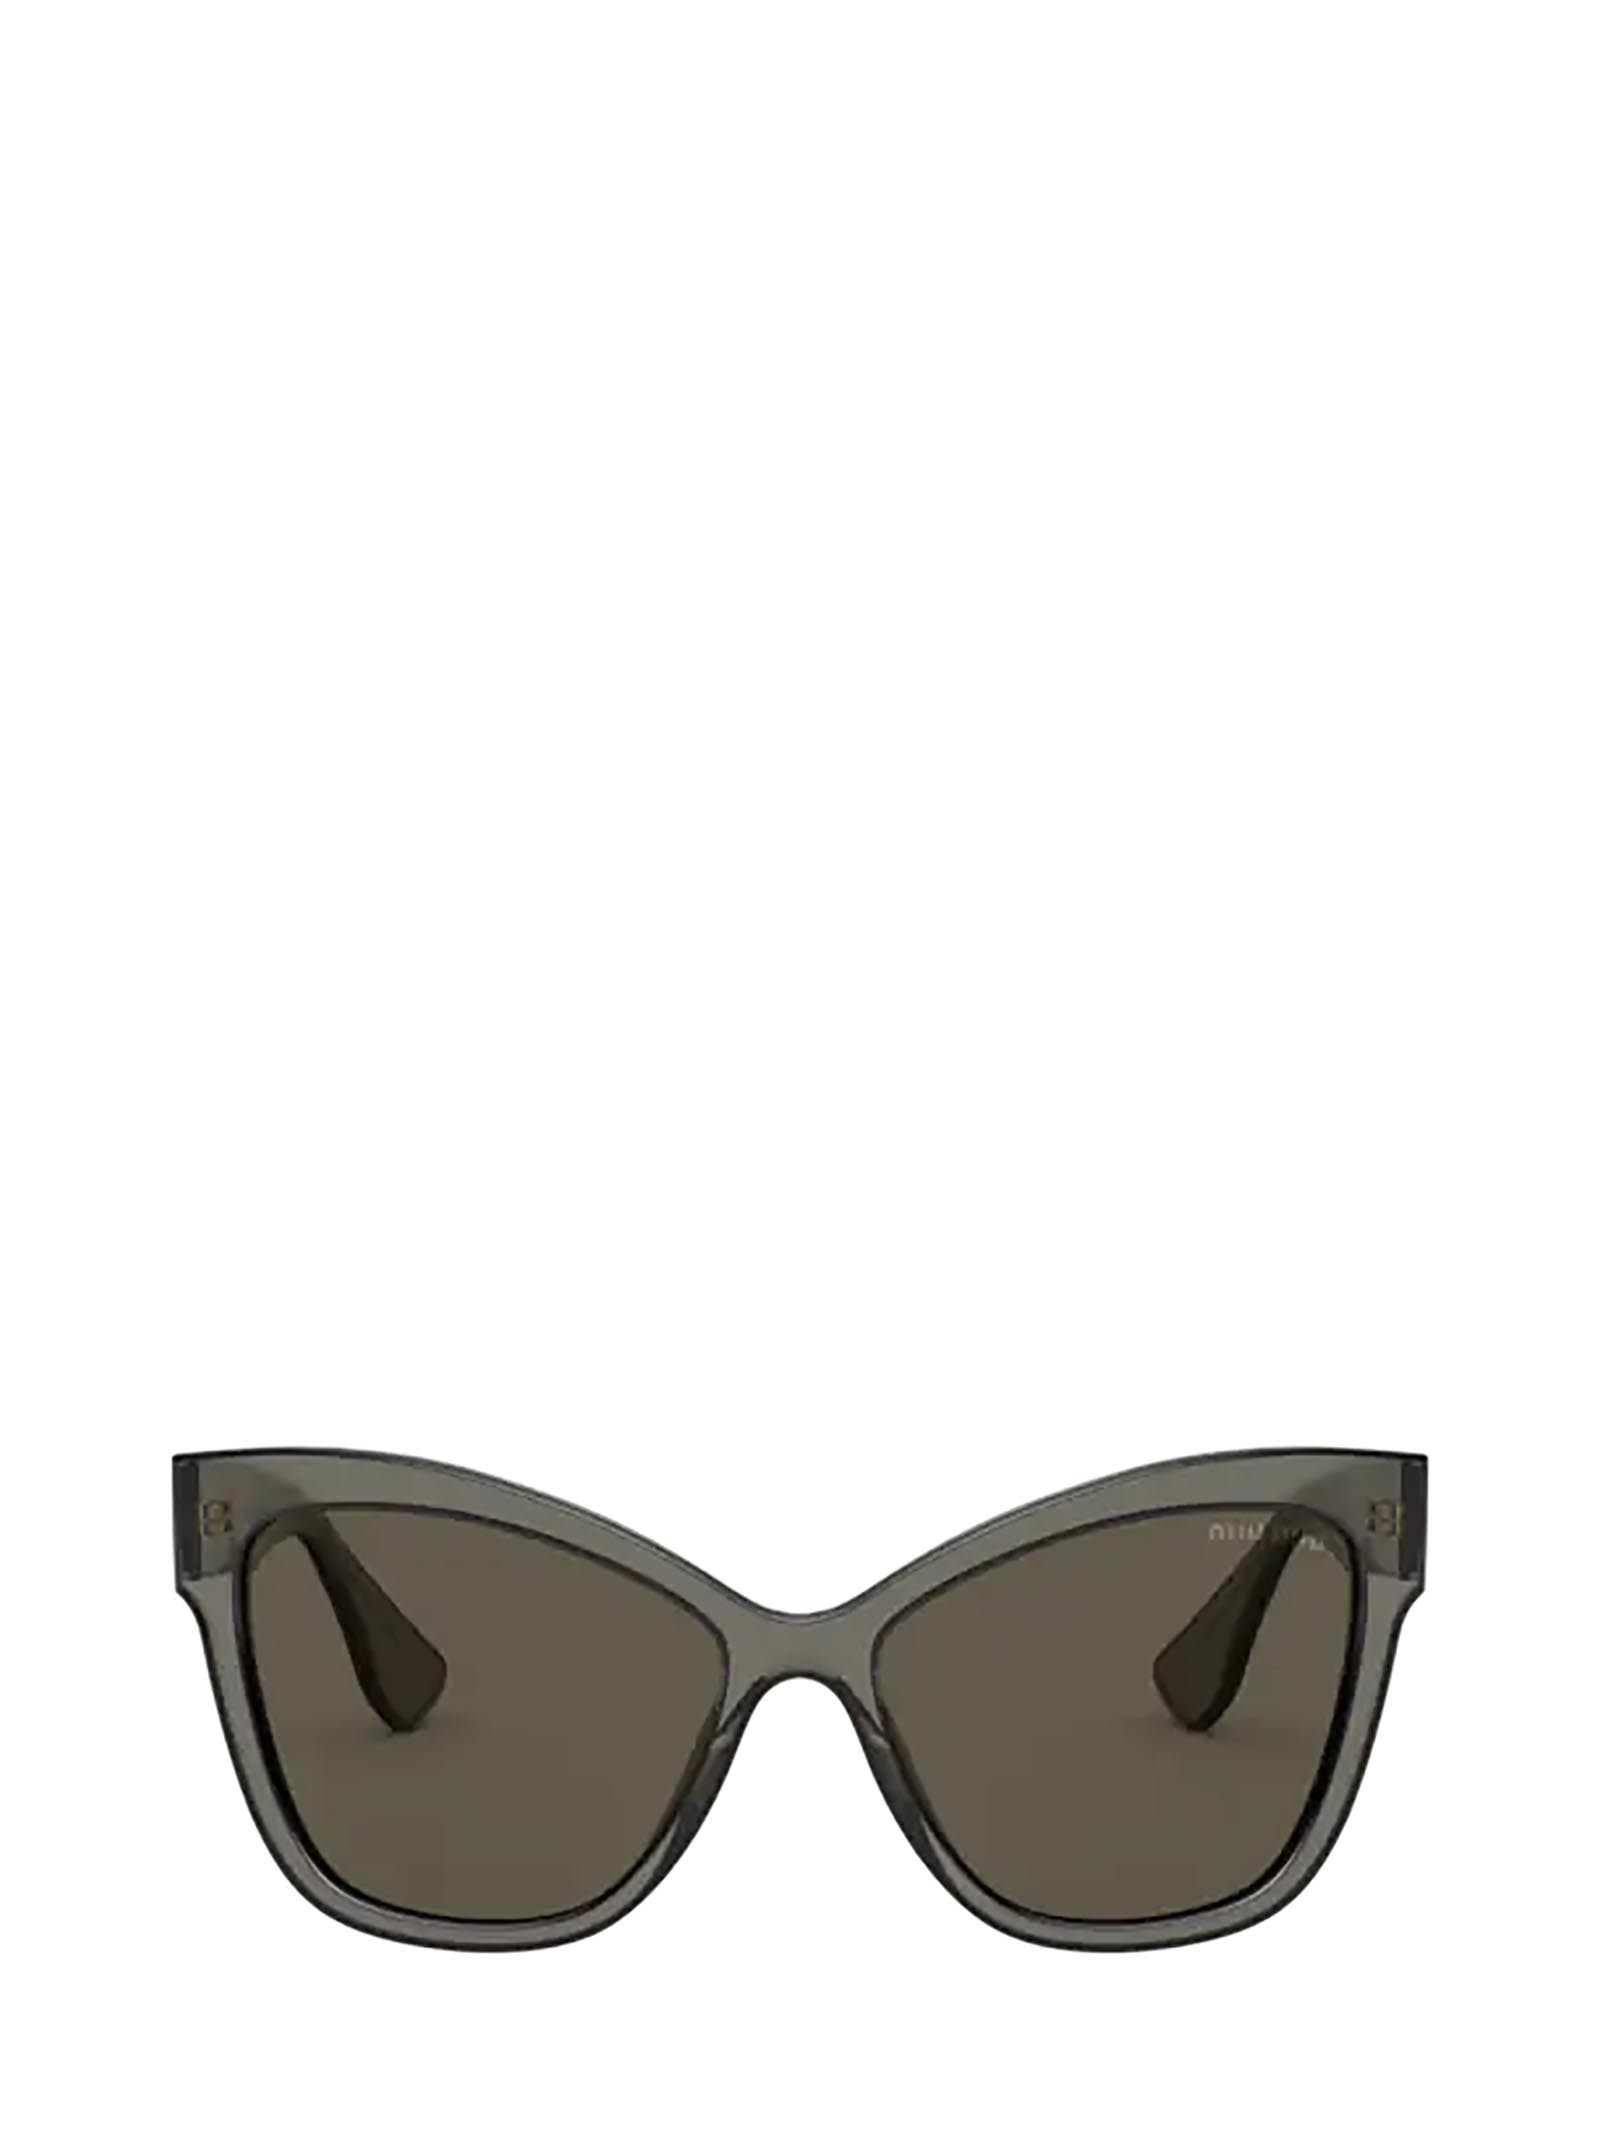 Miu Miu Miu Miu Mu 08vs Black Sunglasses